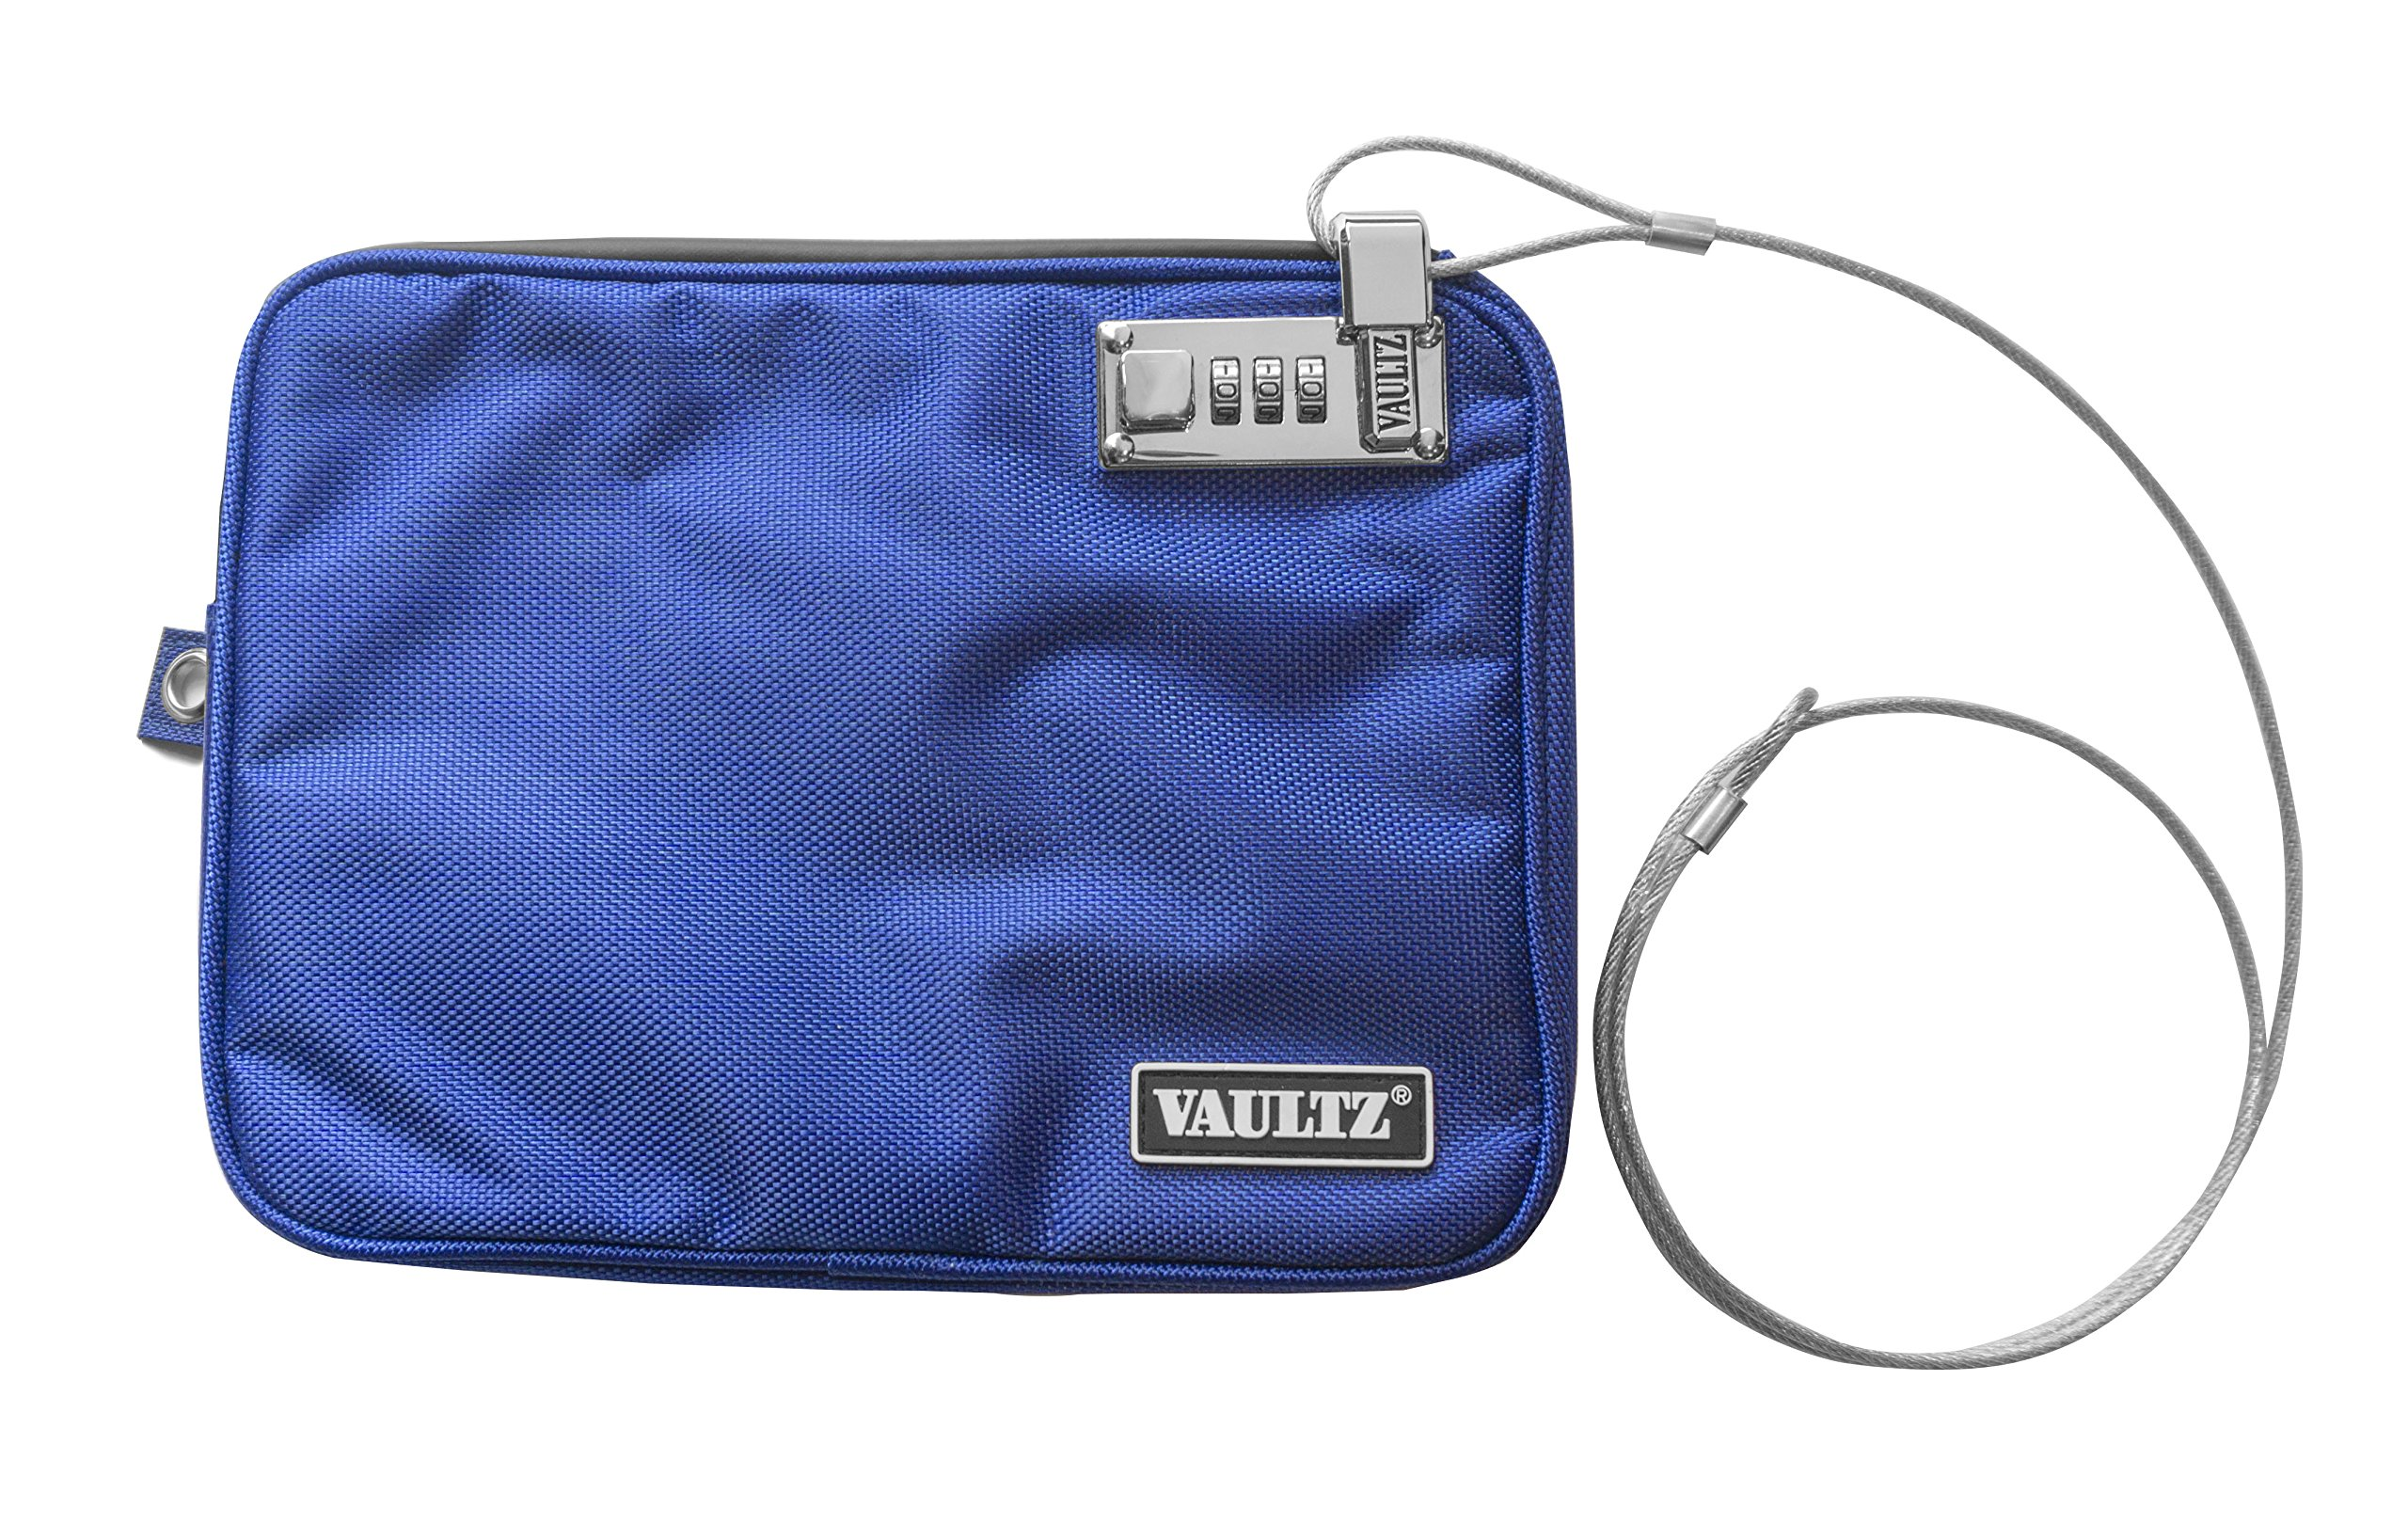 Vaultz Locking Pool Pouch with Tether, Medium, 7.5 x 9 Inches, Blue (VZ00724)